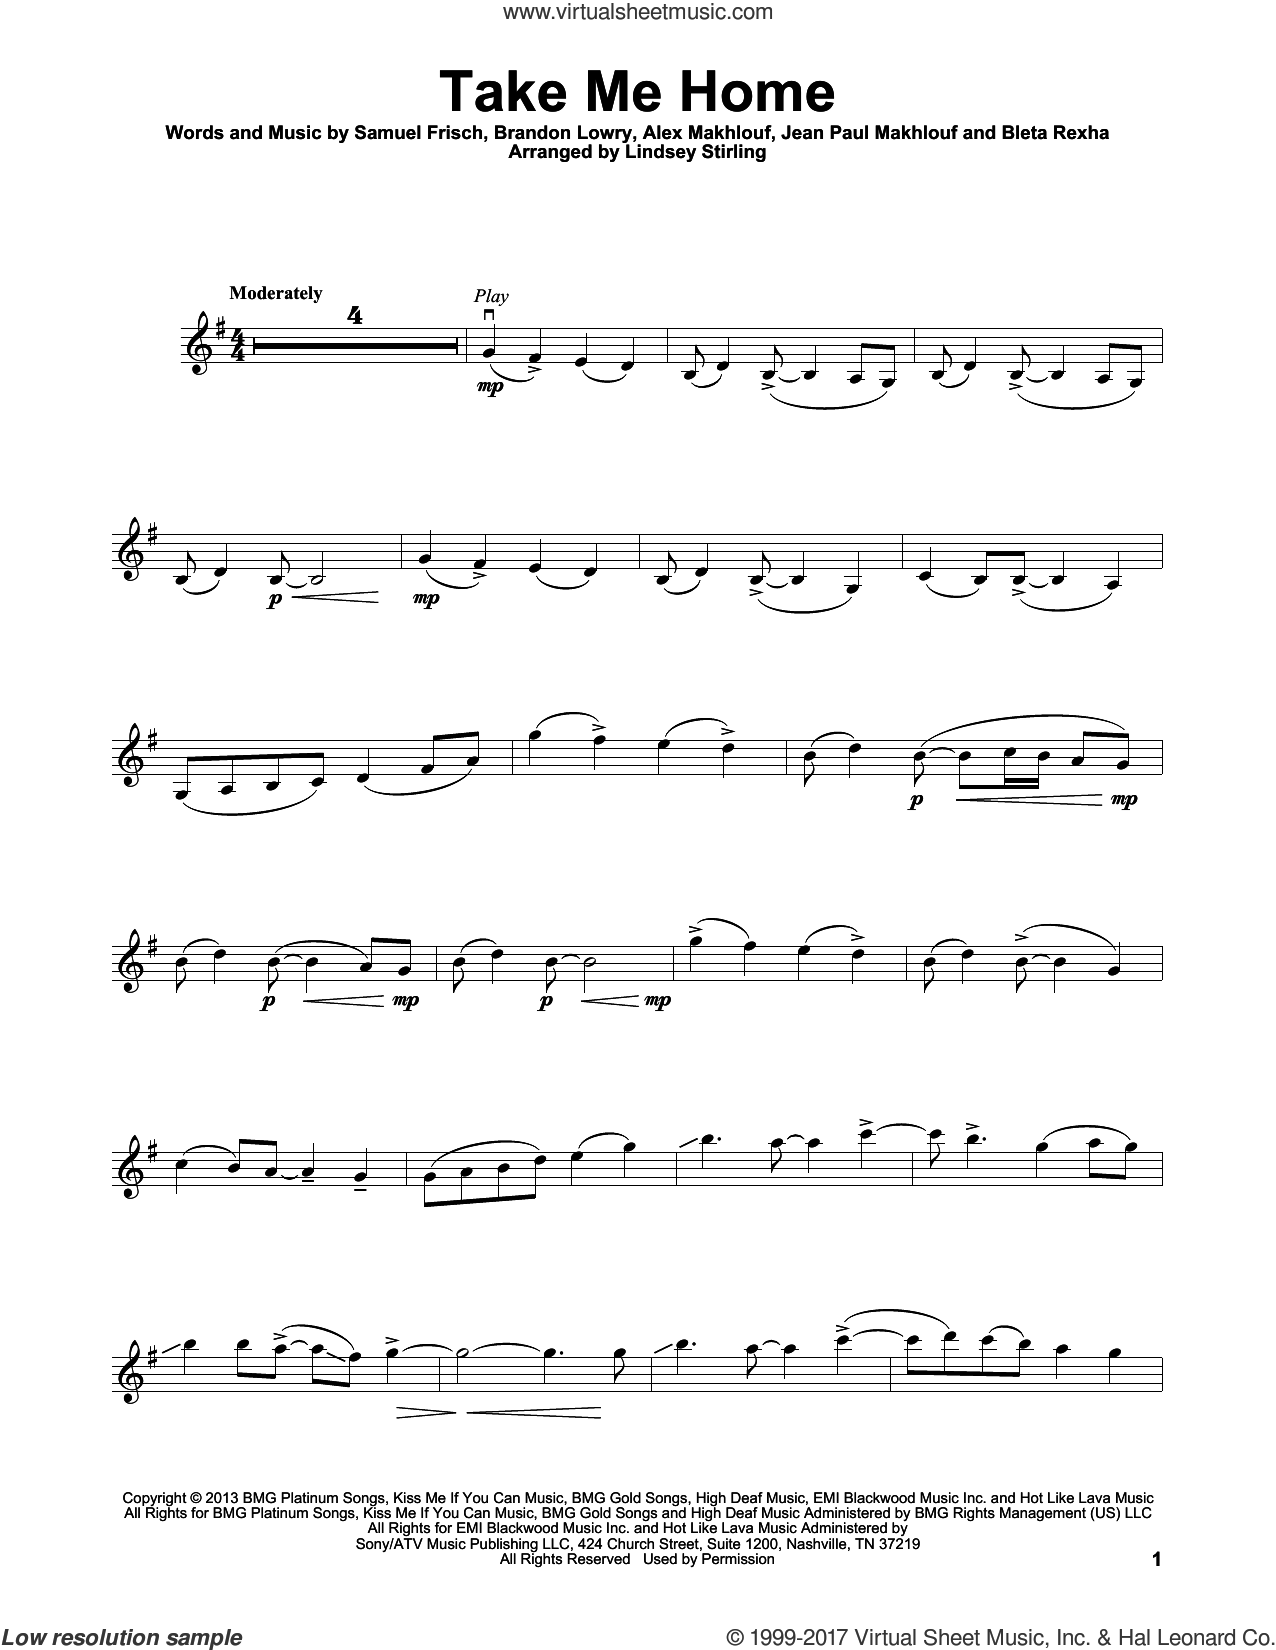 Take Me Home sheet music for violin solo by Lindsey Stirling, Cash Cash, Alex Makhlouf, Bleta Rexha, Brandon Lowry, Jean Paul Makhlouf and Samuel Frisch, intermediate skill level